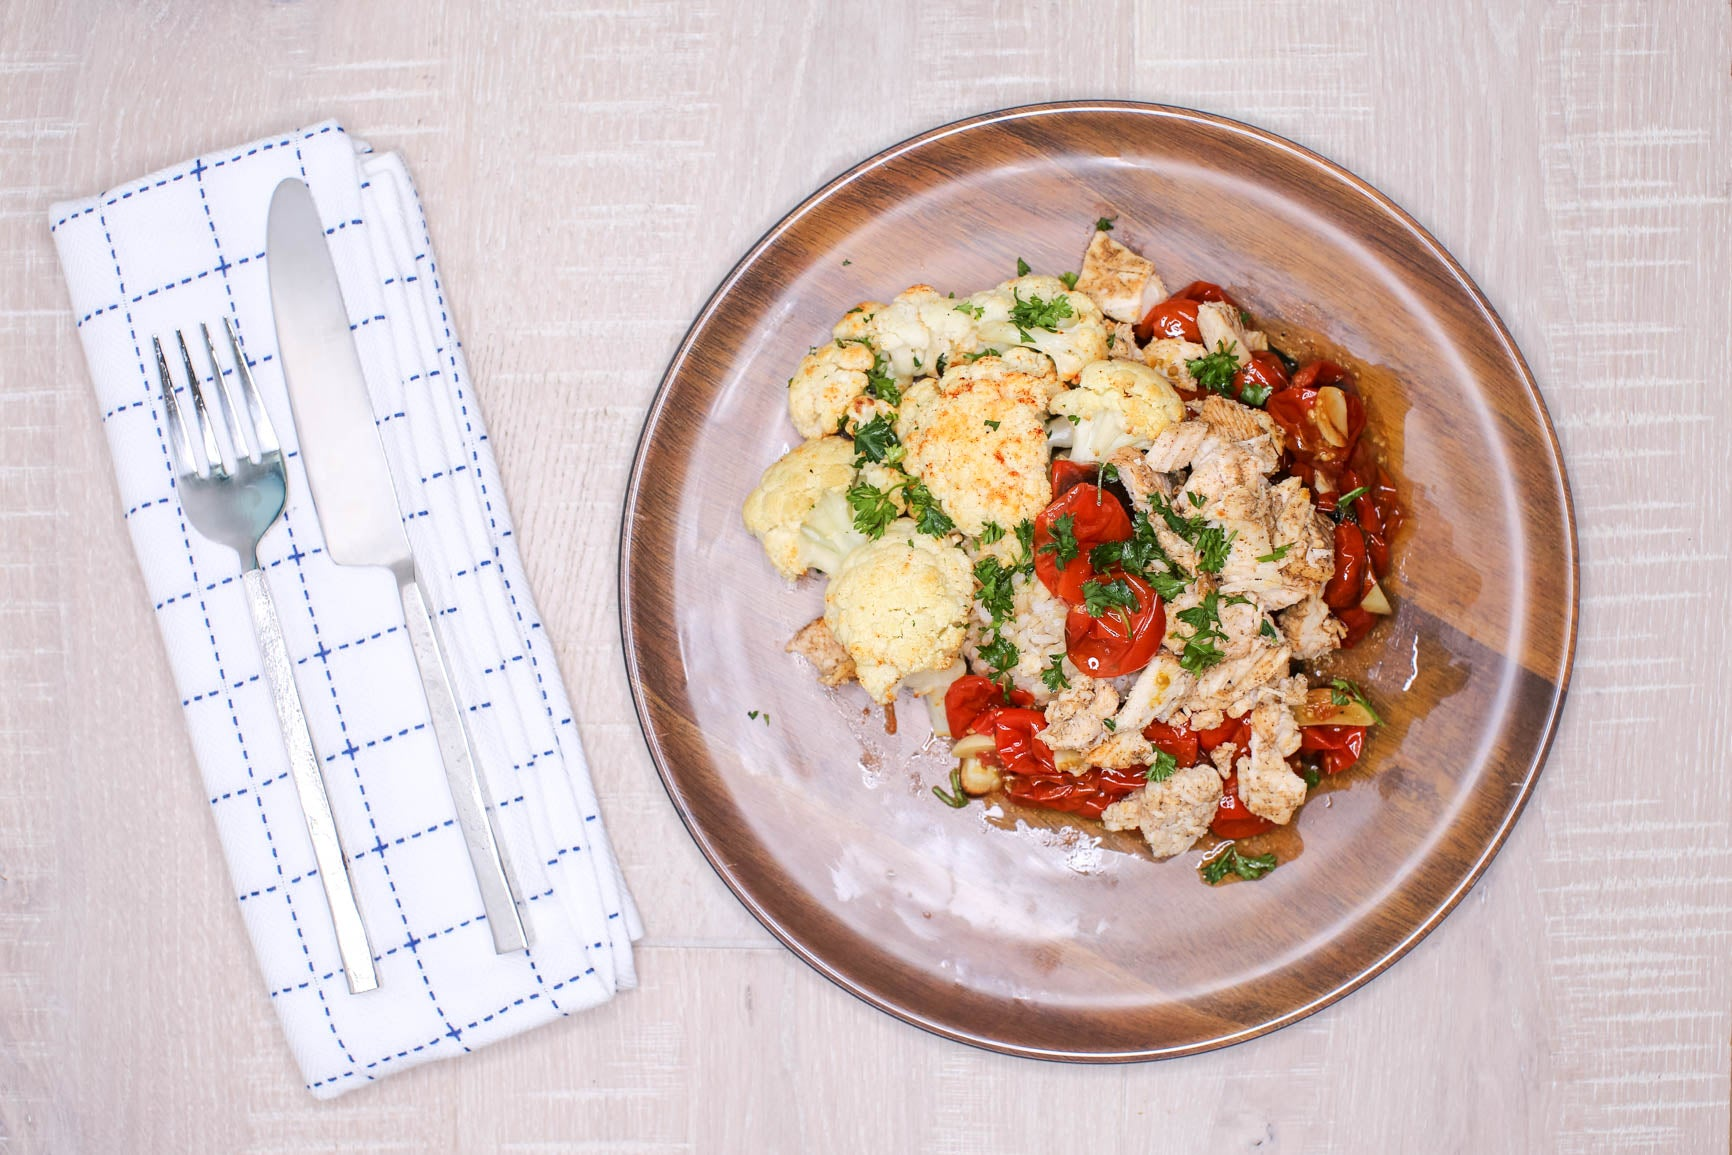 *NEW* Vegetarian Slow Roasted Tomatoes & Cauliflower w/ White Beans